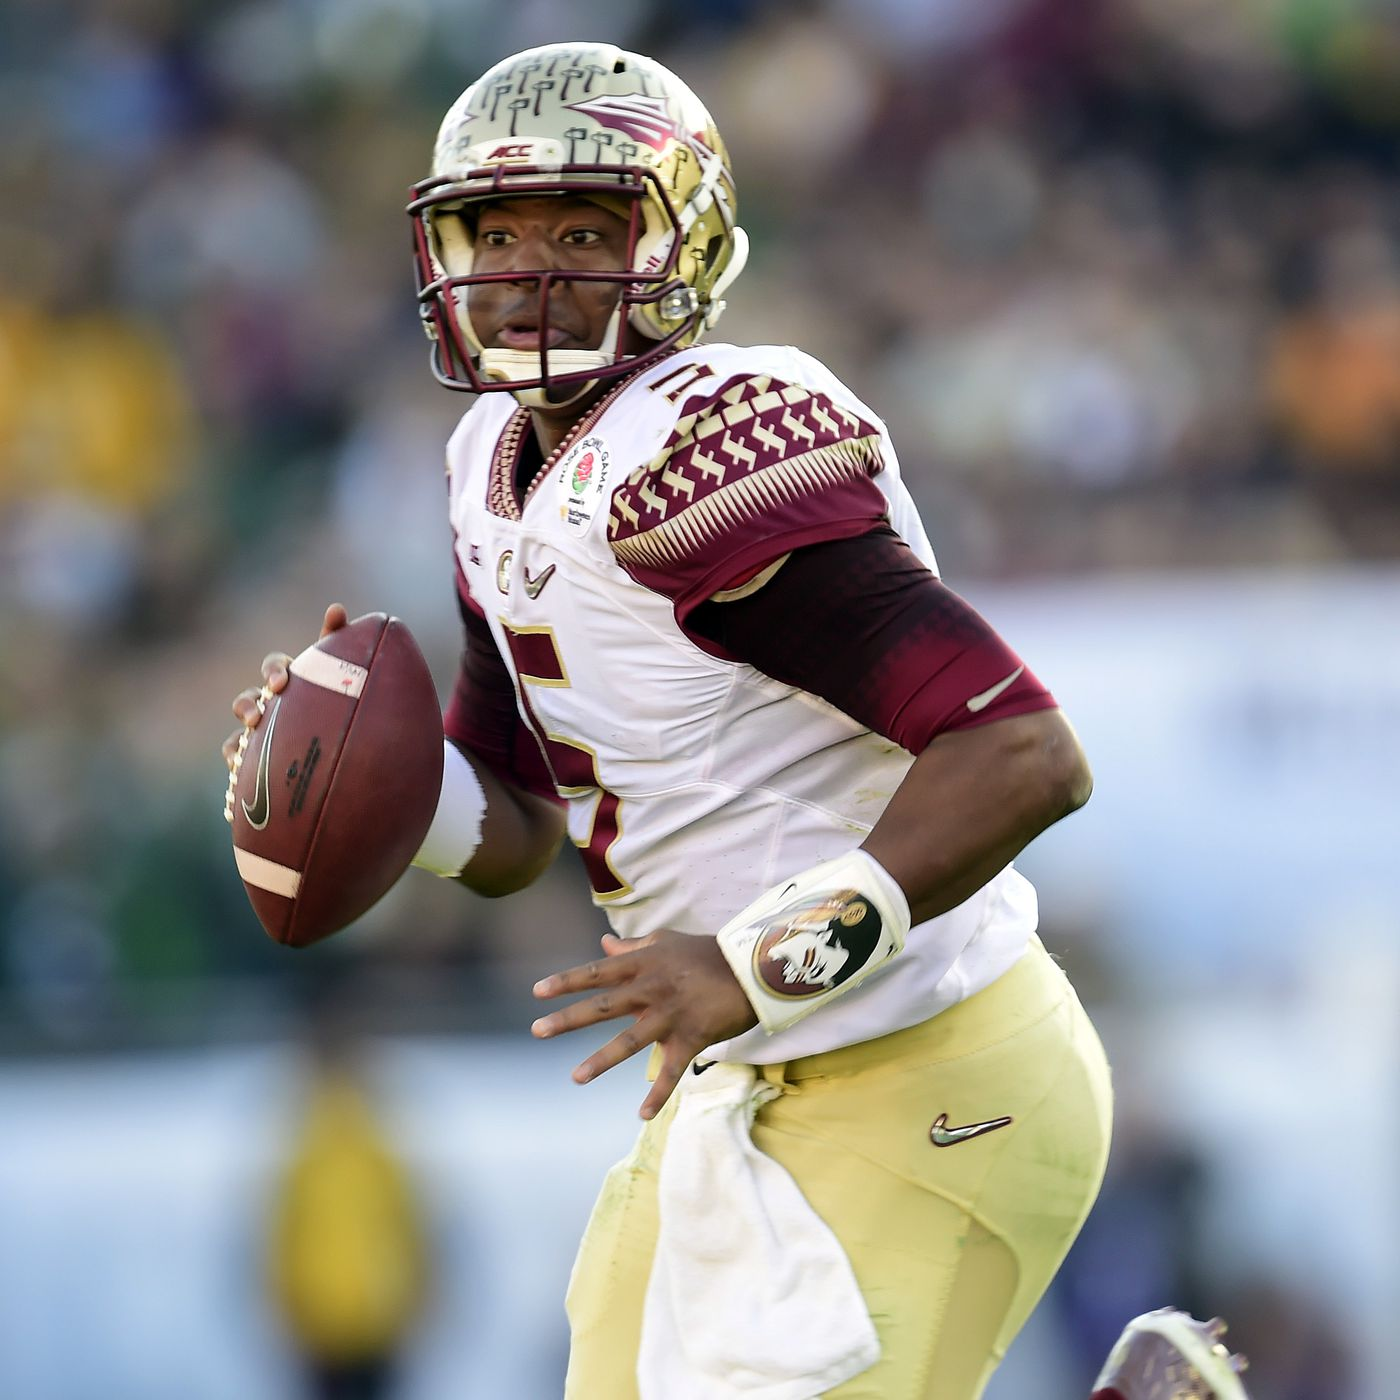 NFL Draft 2015: Underclassmen declared for Draft - The Phinsider